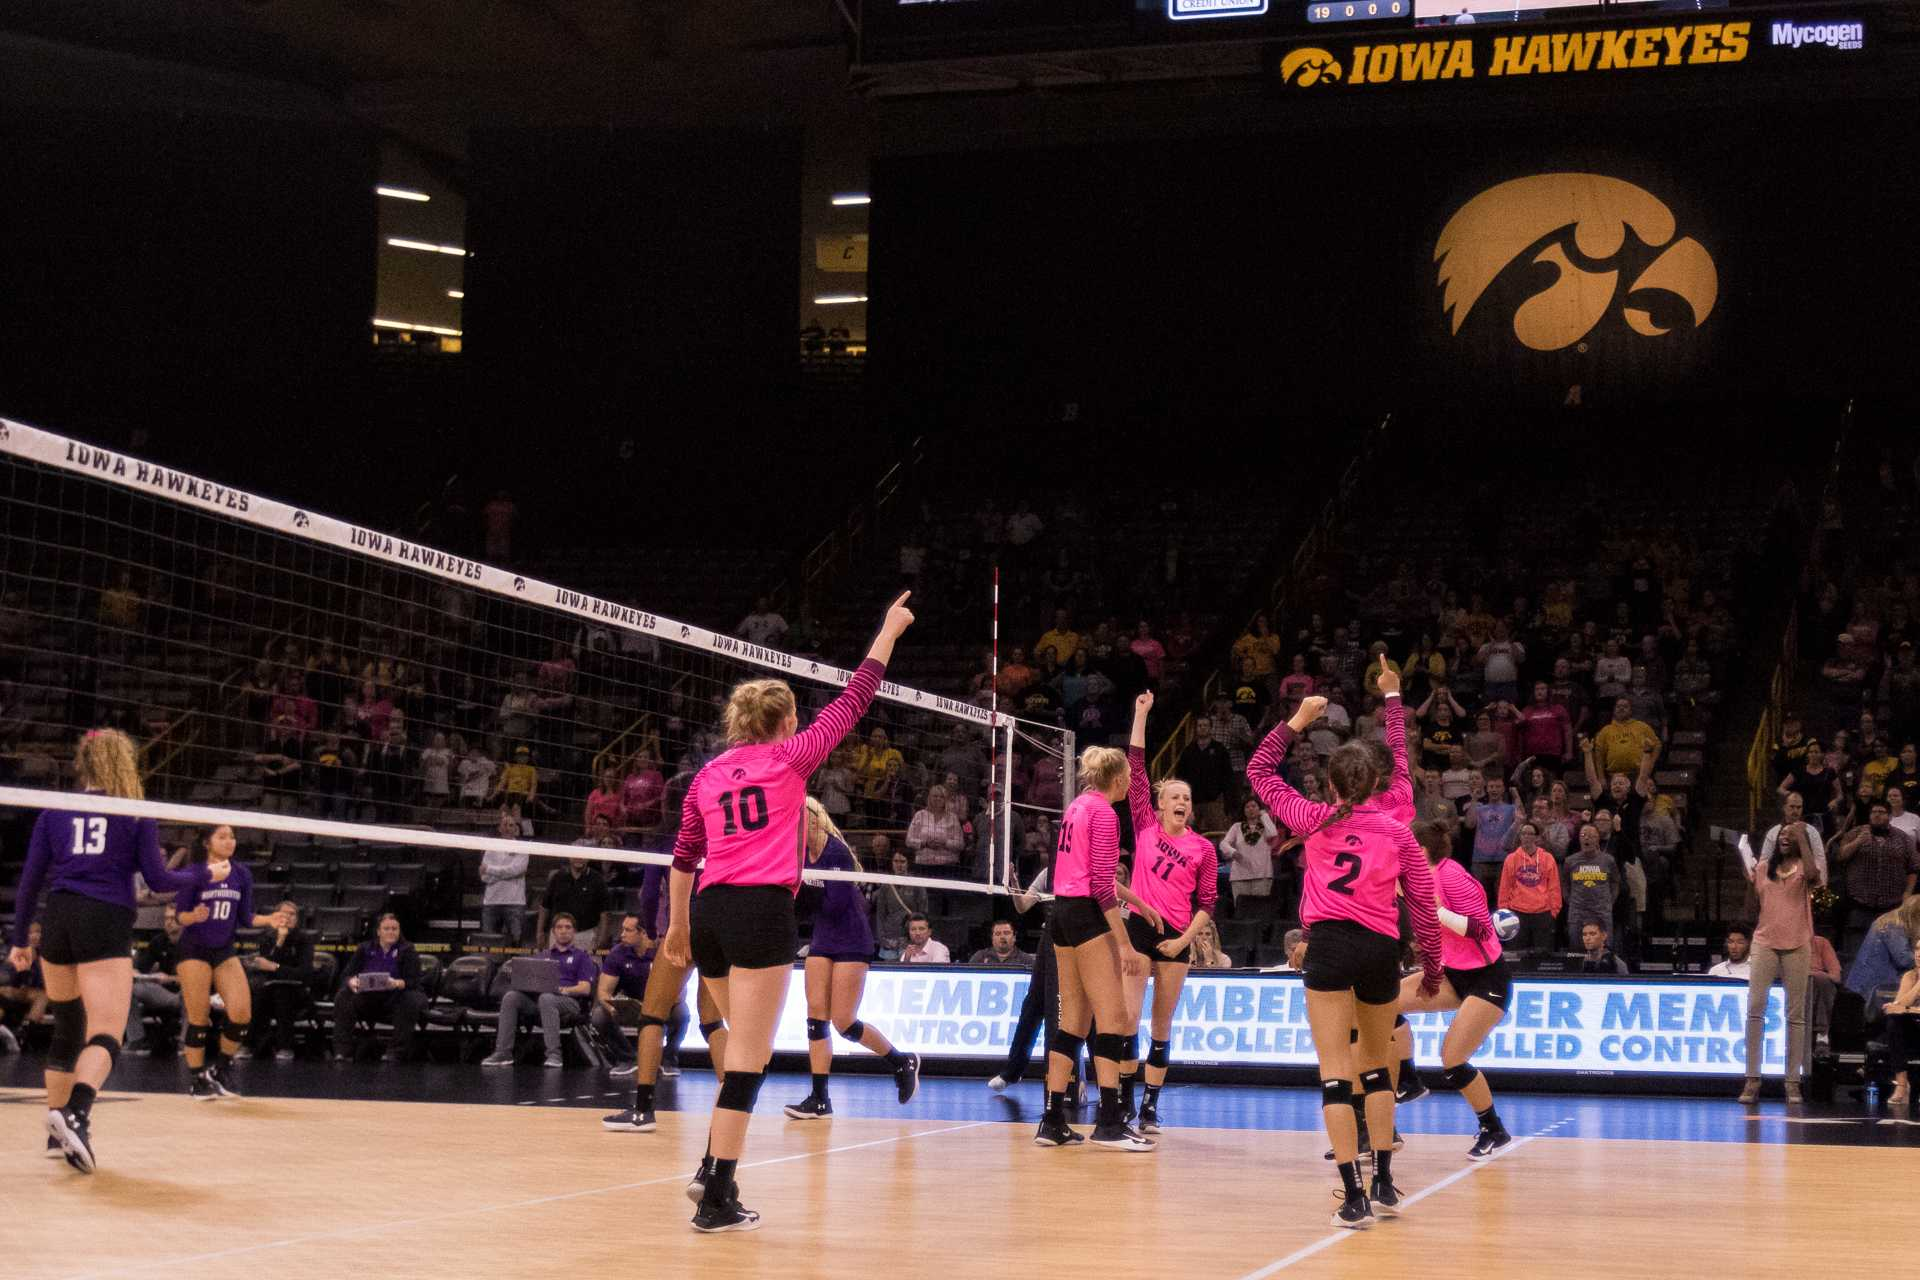 Iowa Hawkeye volleyball players celebrate the final point of the match against the Northwestern University Wildcats on Saturday, Oct. 21, 2017. The Hawkeyes defeated the Wildcats three sets to zero. (David Harmantas/The Daily Iowan)